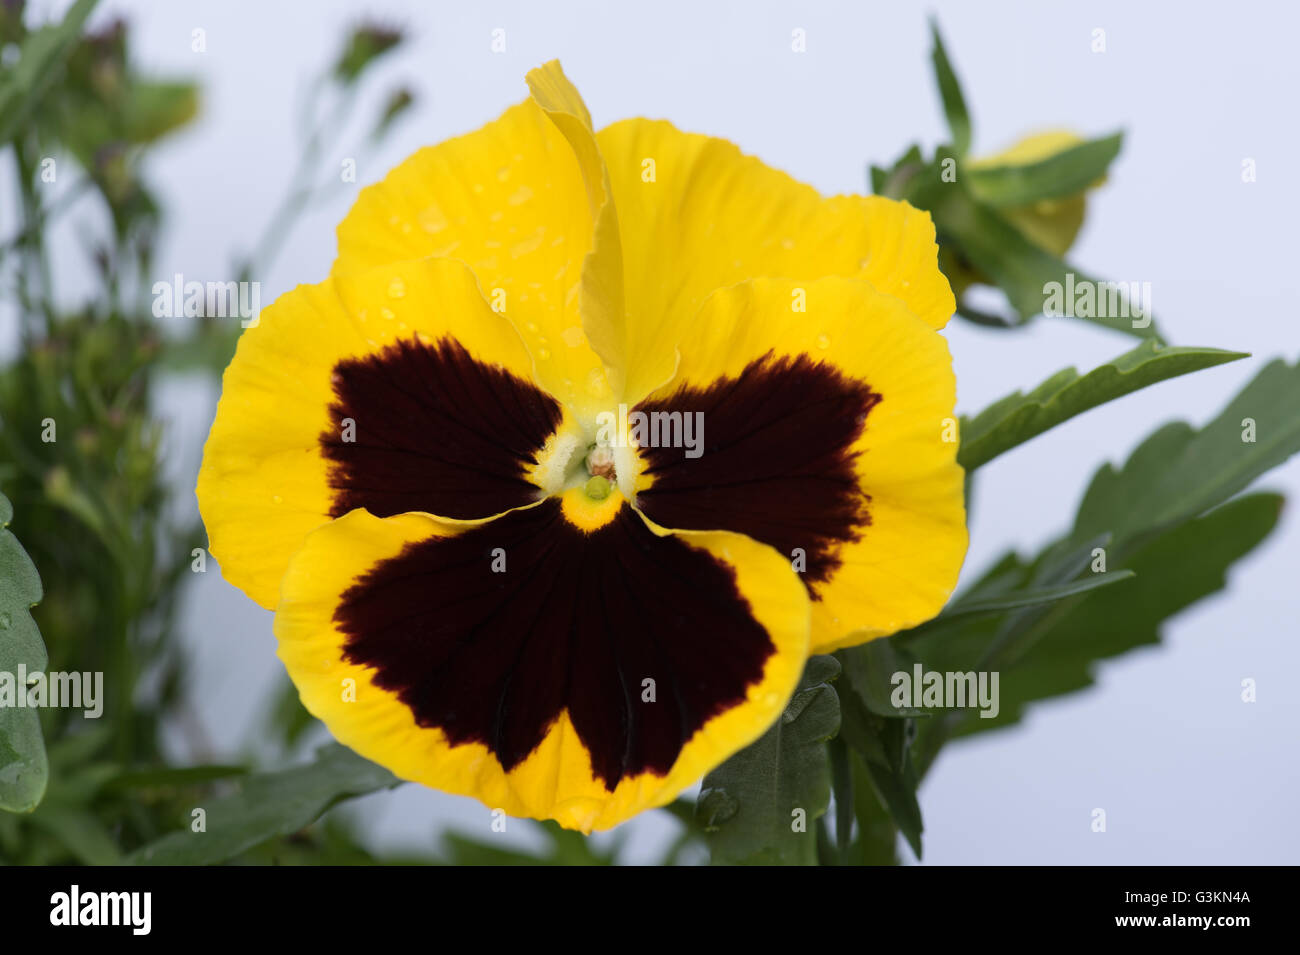 The lovely yellow and black faces of Viola wittrockiana, commonly called the pansy - Stock Image